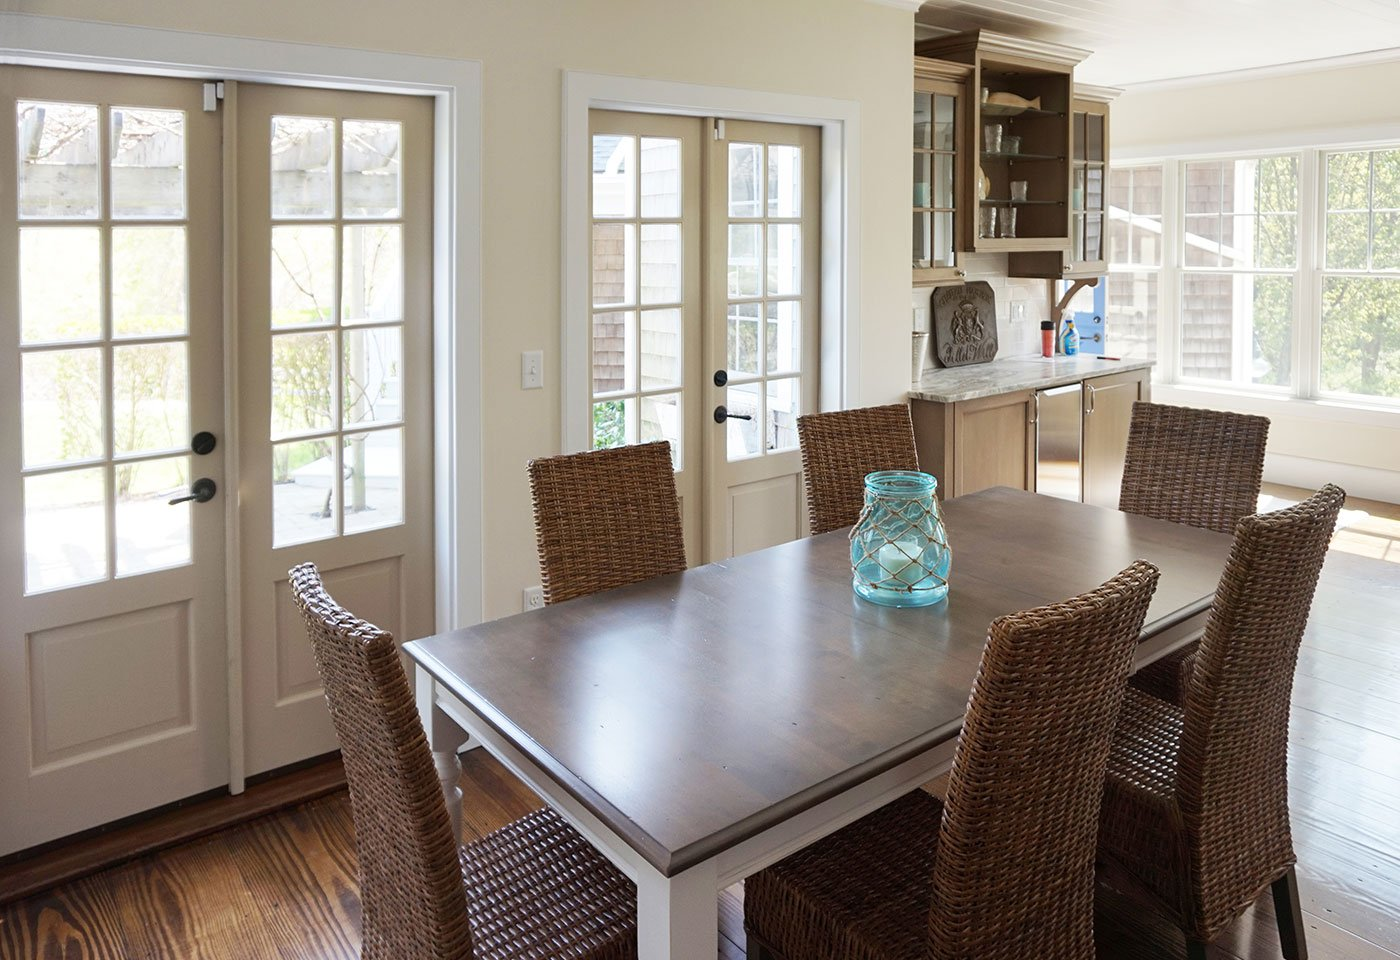 1 Rustic home renovation by in house design - construction build firm in RI